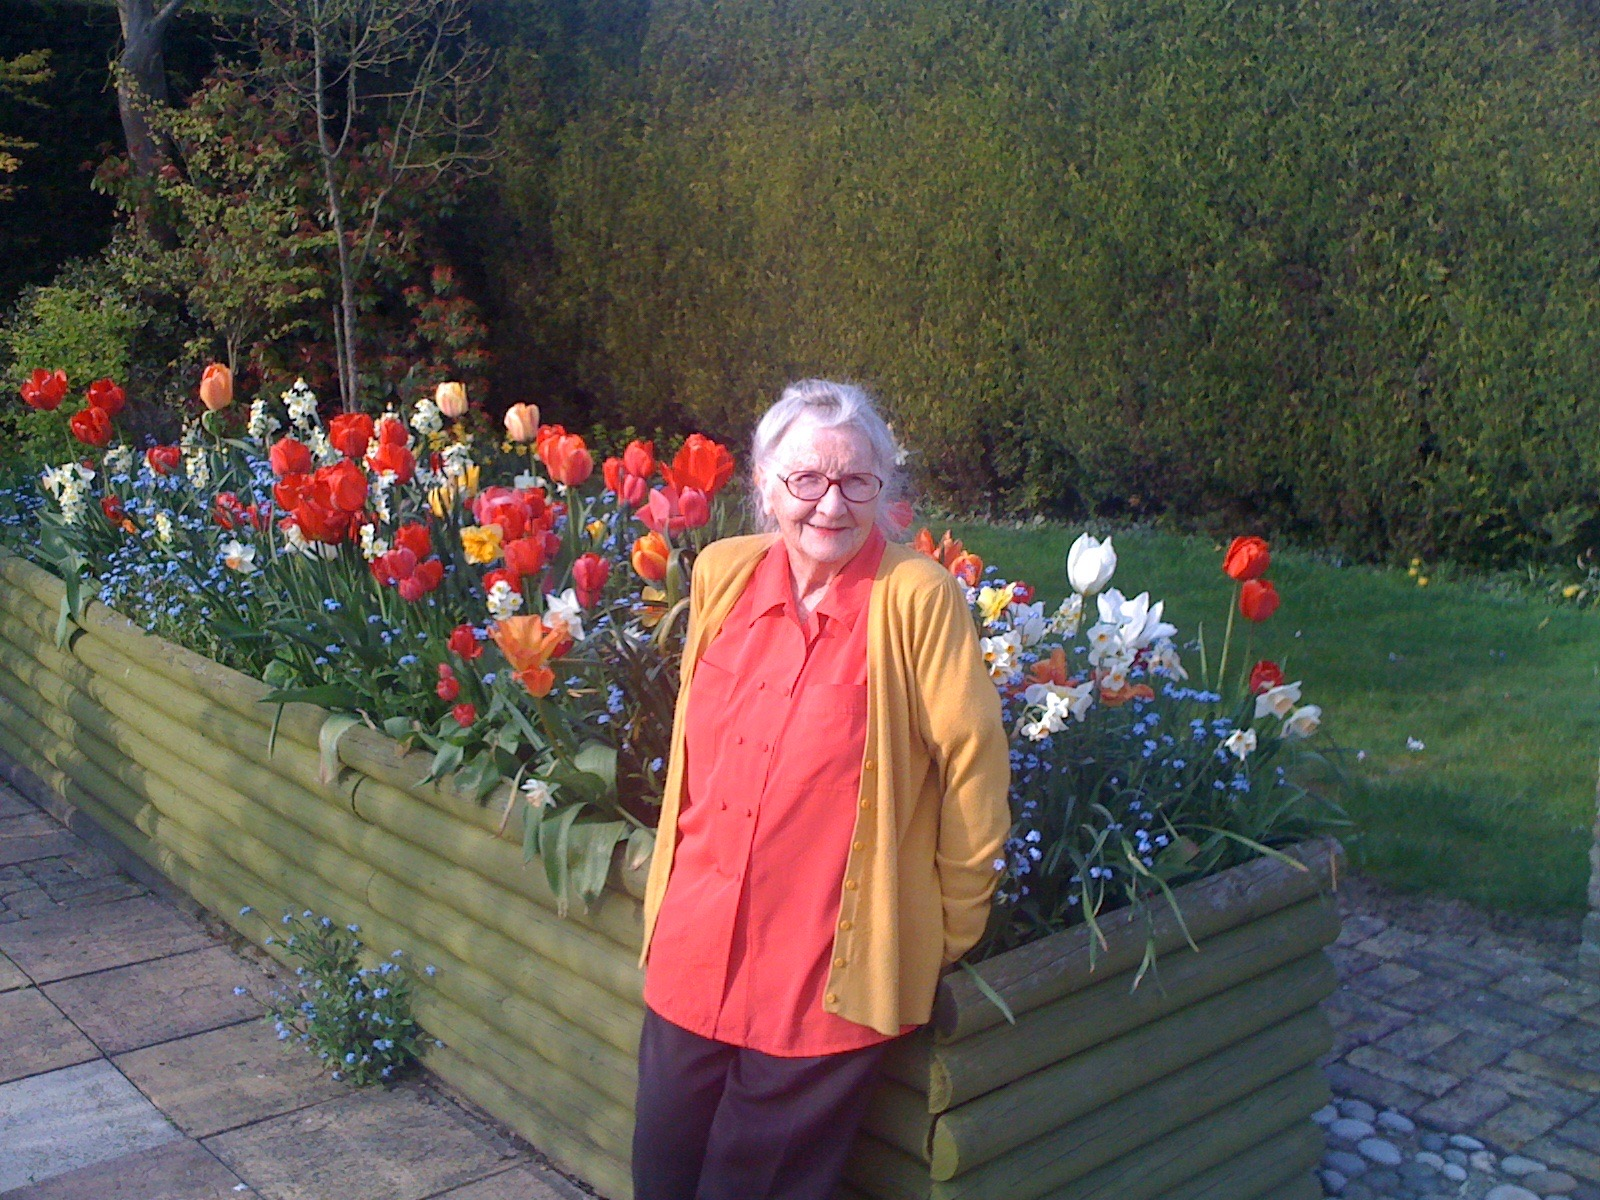 Tulips, daffodils, forget-me-nots, container gardening, colour